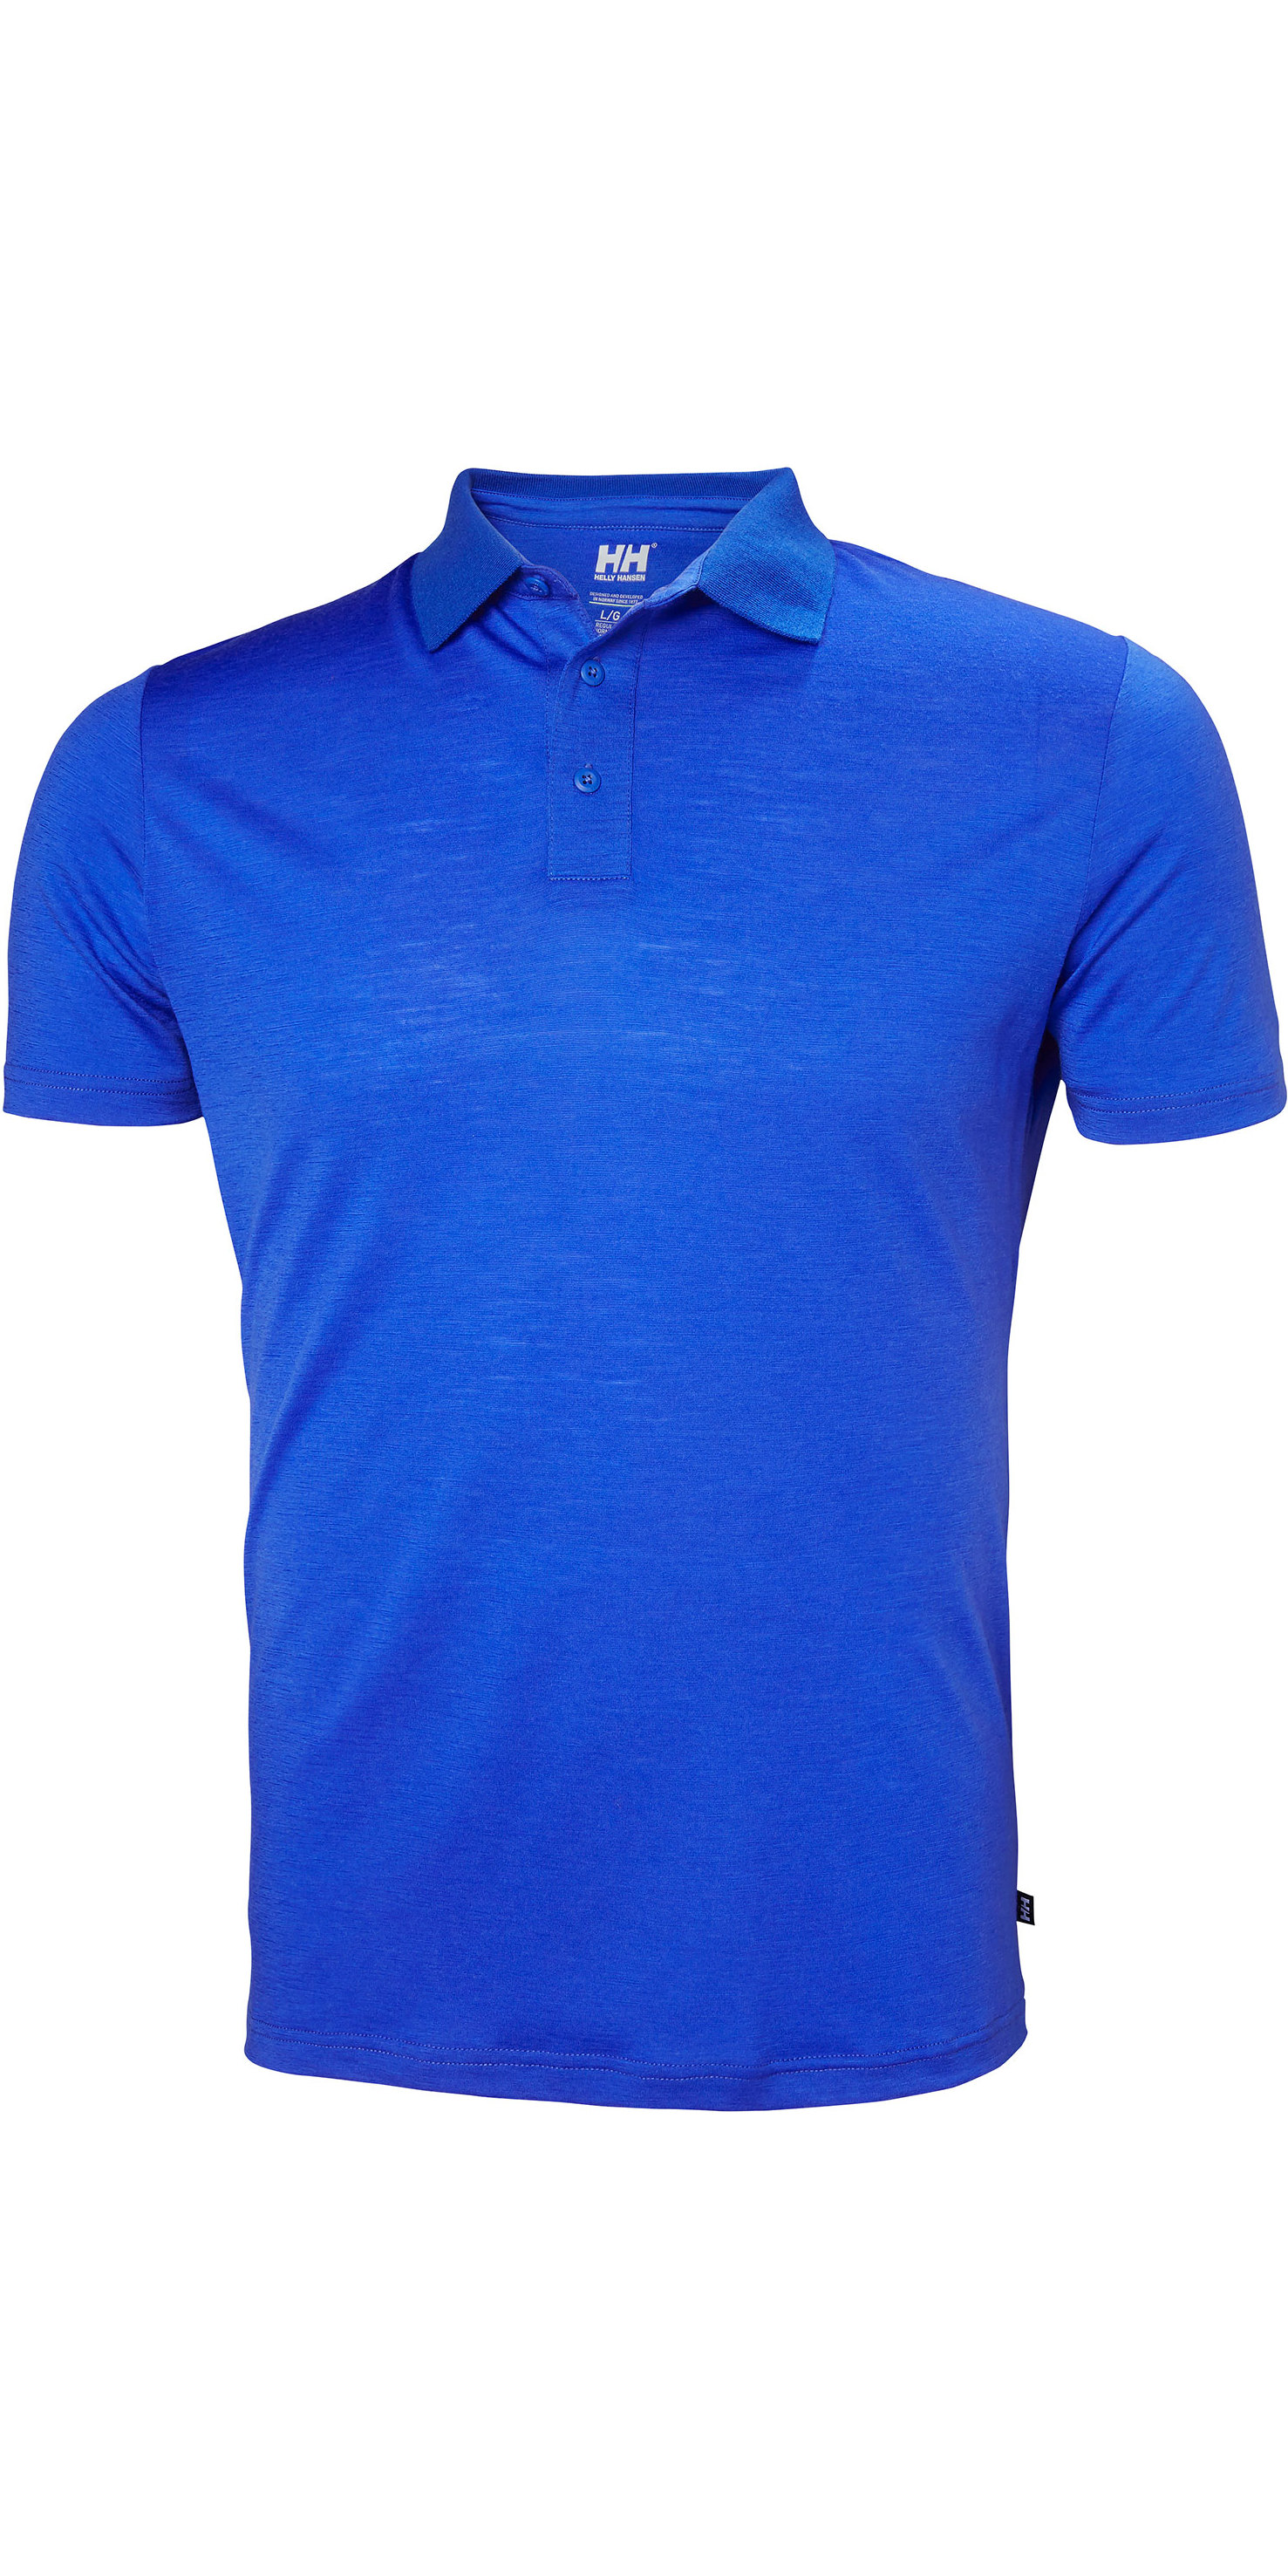 84f0c0c155 2019 Helly Hansen Herren Merino Light Kurzarm Polo Olympian Blue 49320 - Polo  Shirts - Shore | Wetsuit Outlet